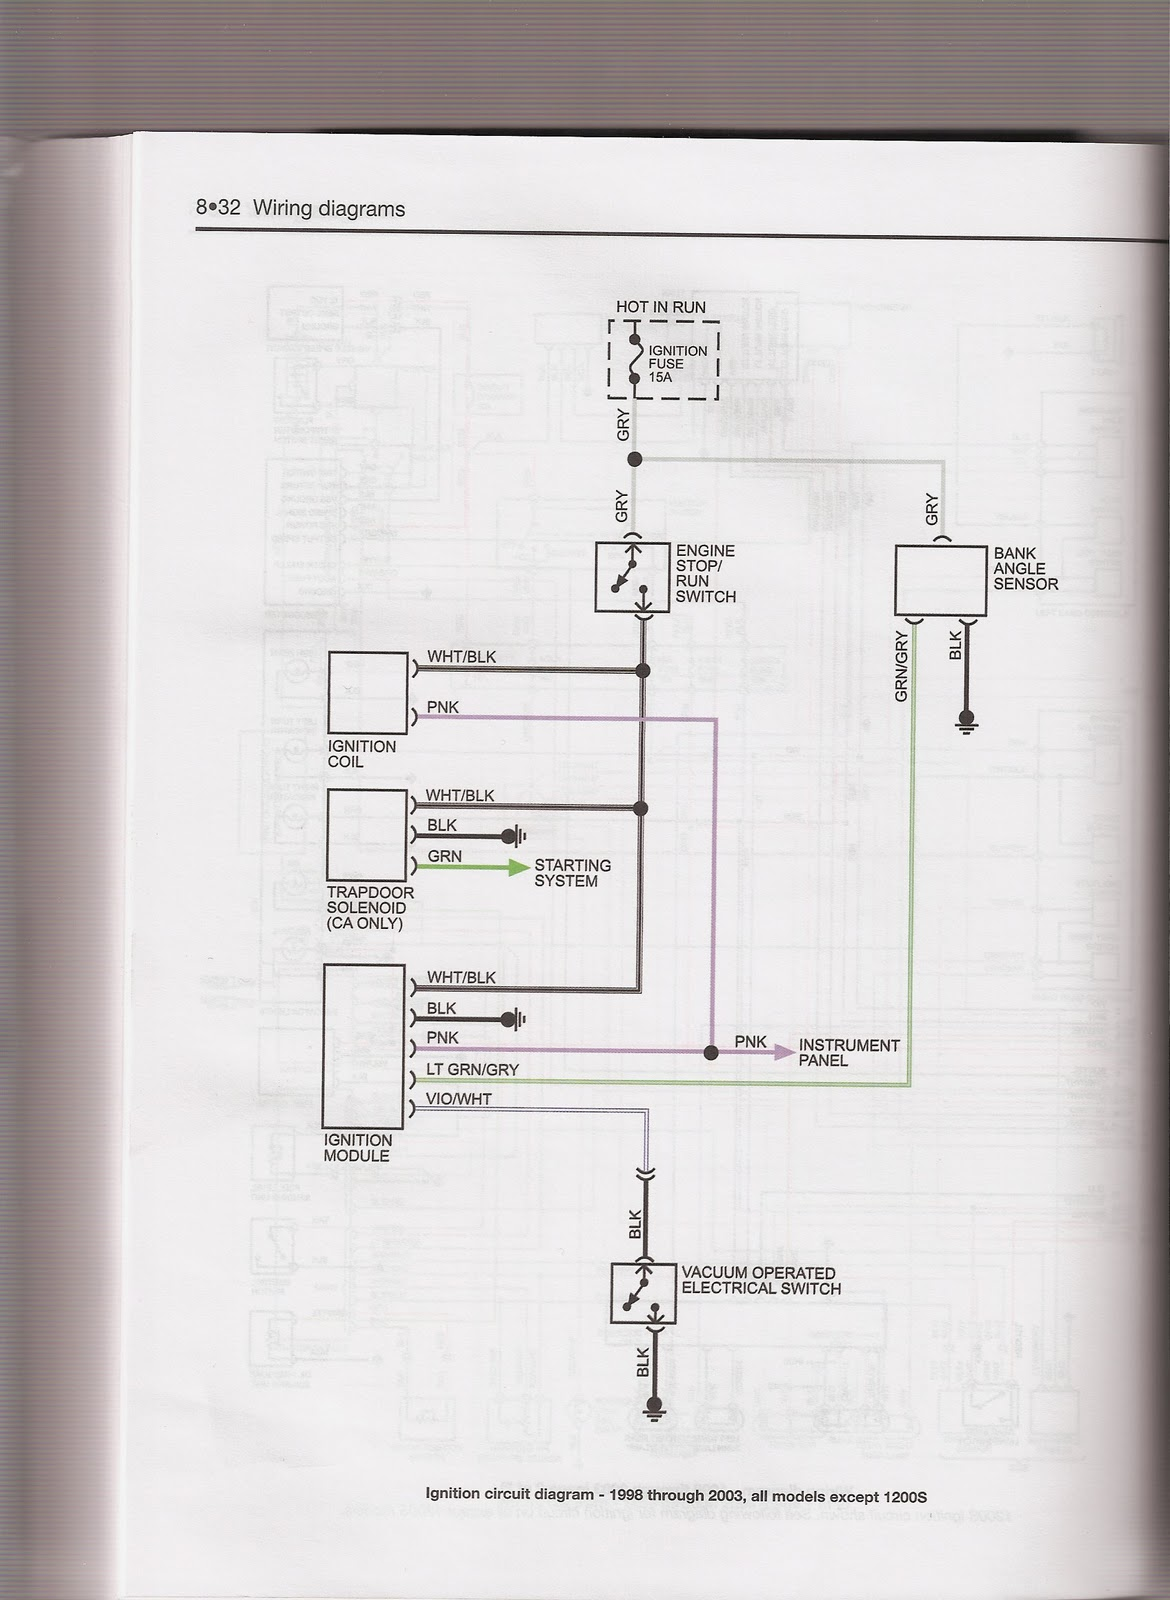 SCAN0016 kracker jacks wiring diagrams for a 98 03 sportster sportster wiring diagram at panicattacktreatment.co